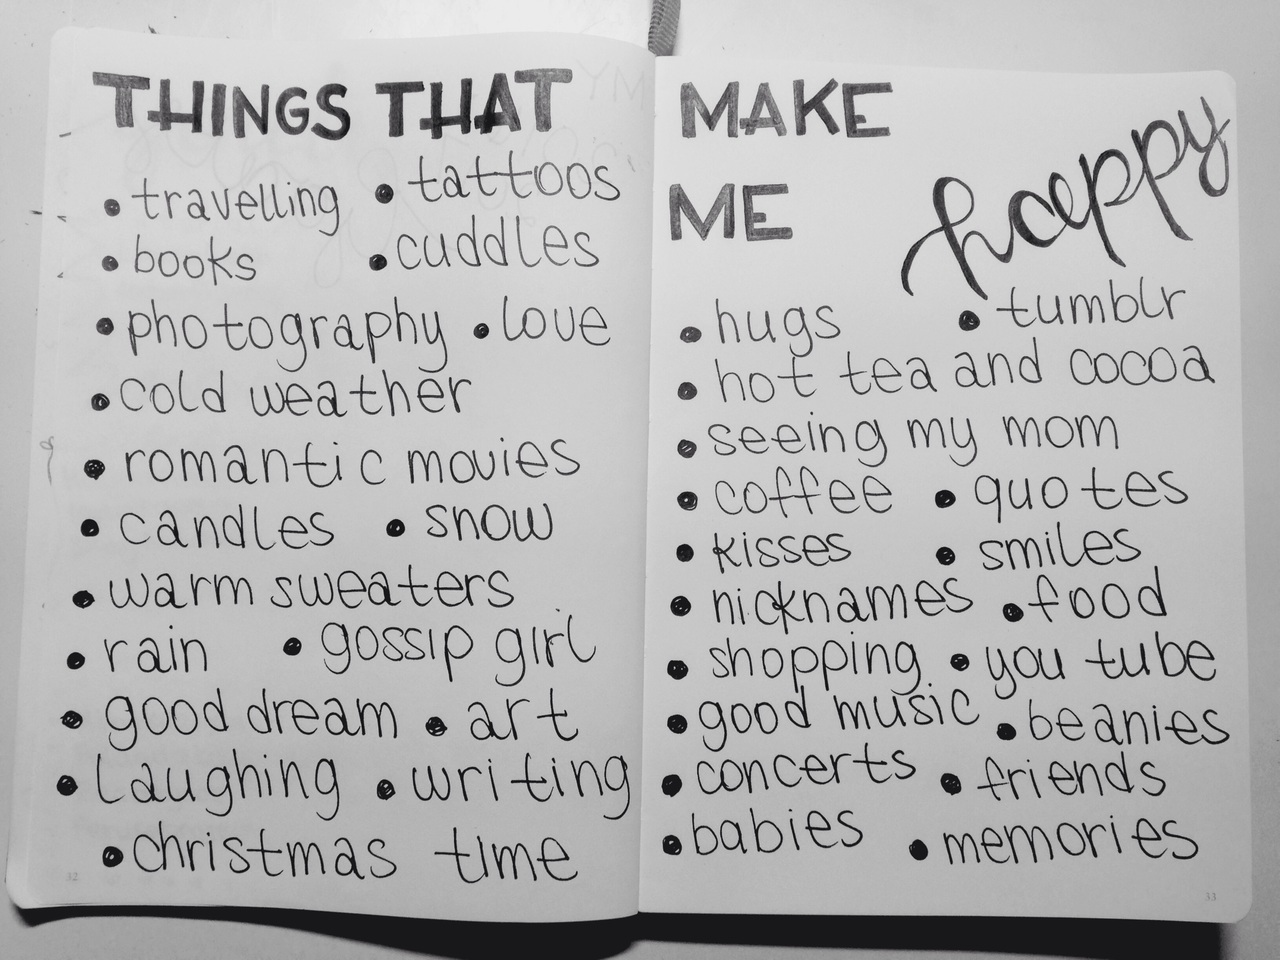 A Happiness List